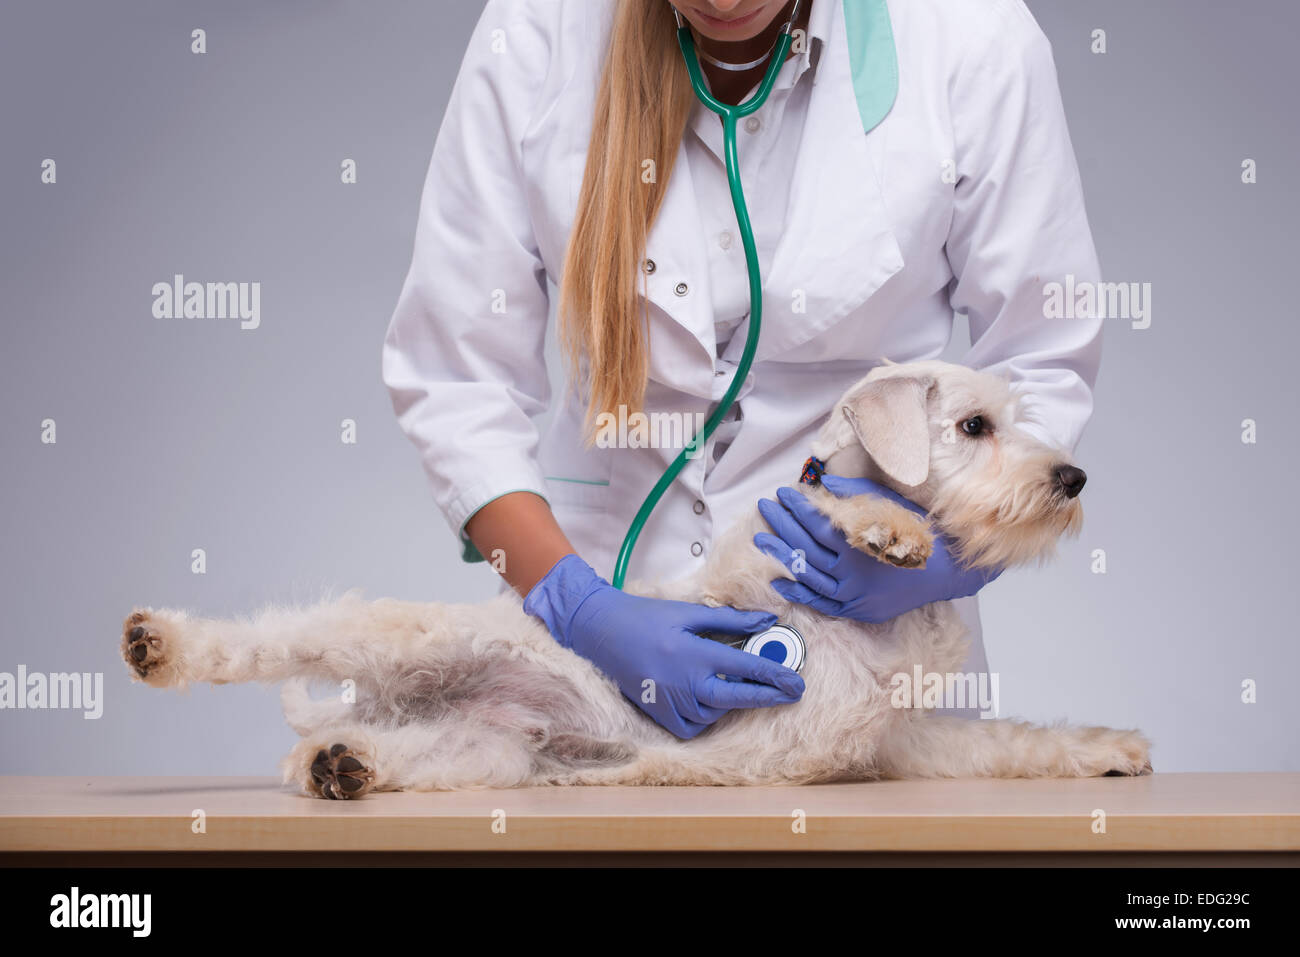 Female veterinarian examines little dog with stethoscope - Stock Image